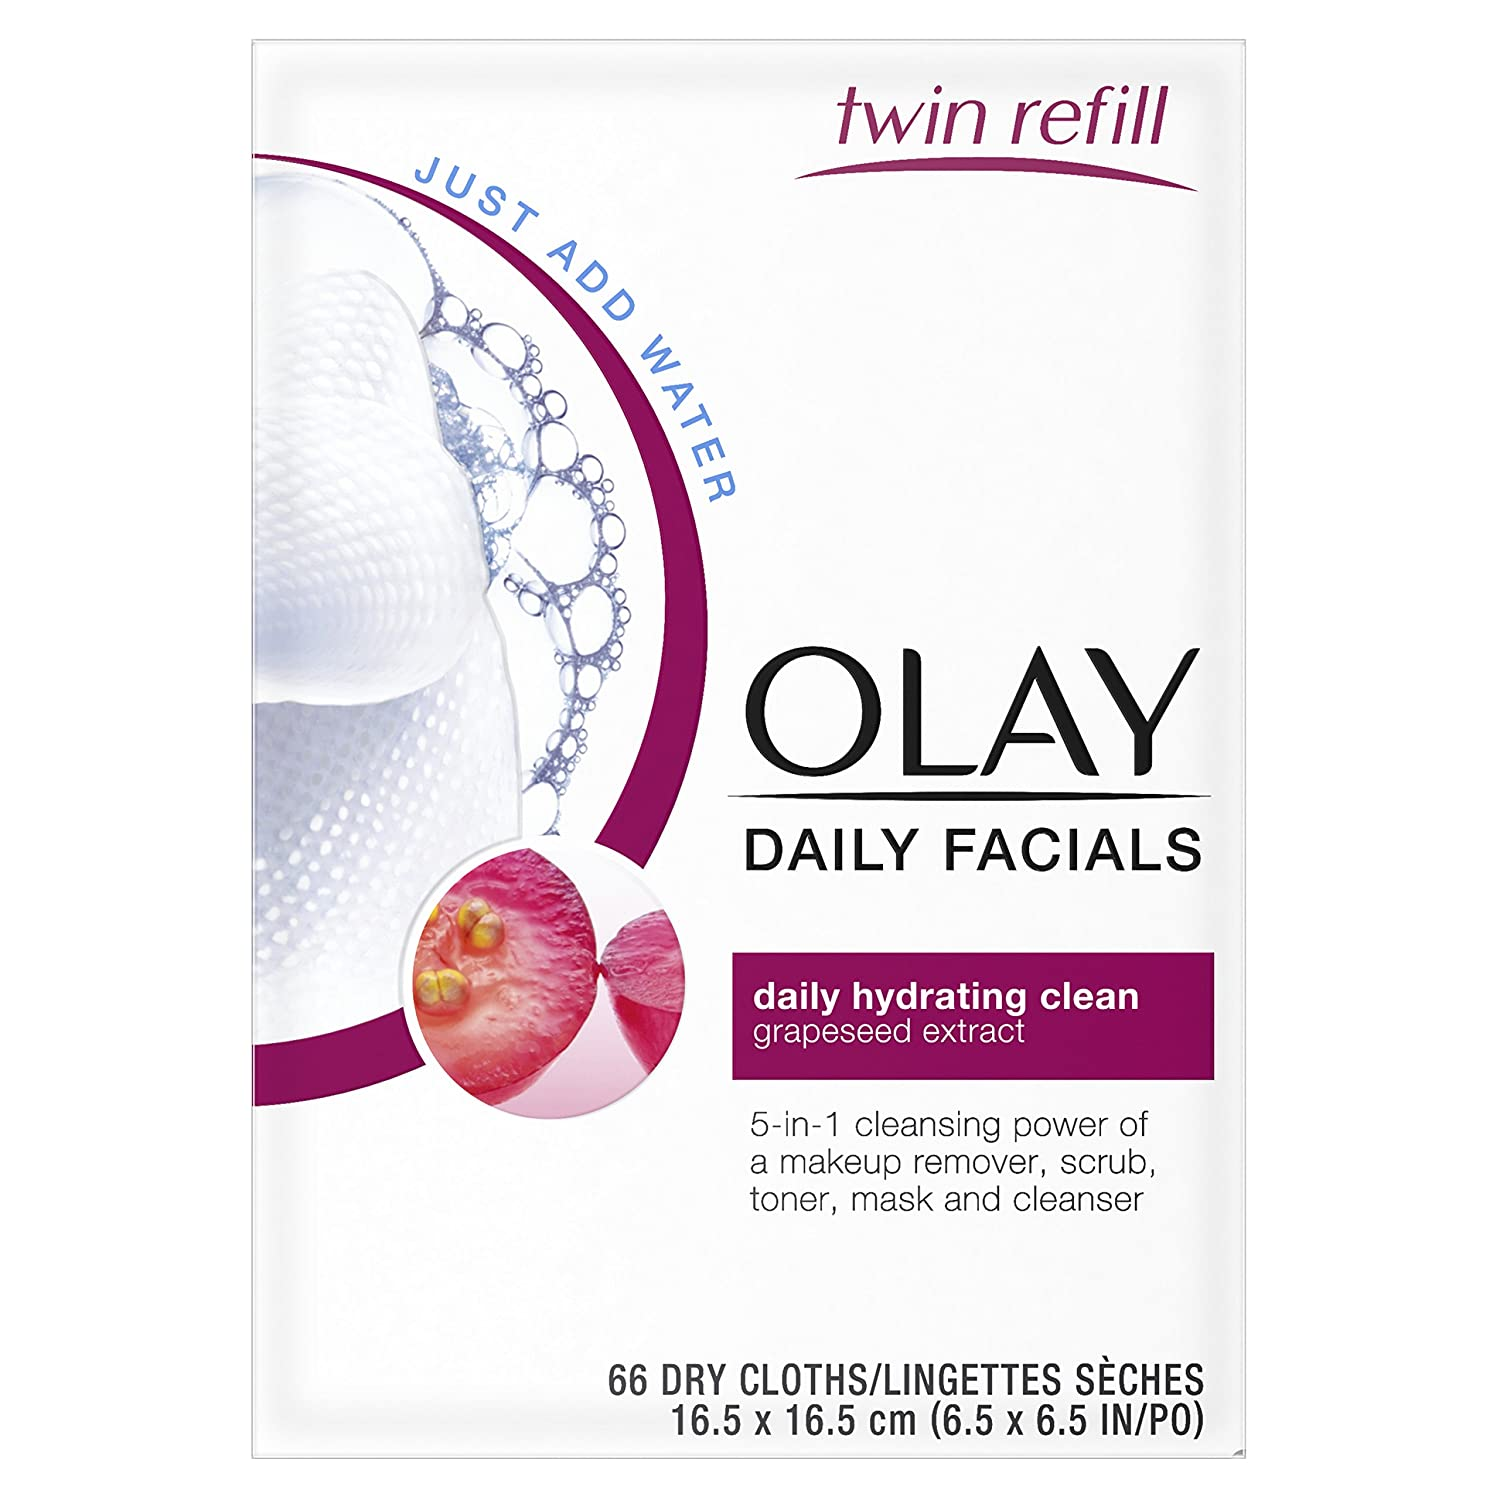 Amazon.com: Olay Daily Facials, Daily Hydrating clean & 5-in-1 Cleansing  power of a makeup remover, scrub, toner, mask & cleanser 66 Dry Cloths:  Beauty